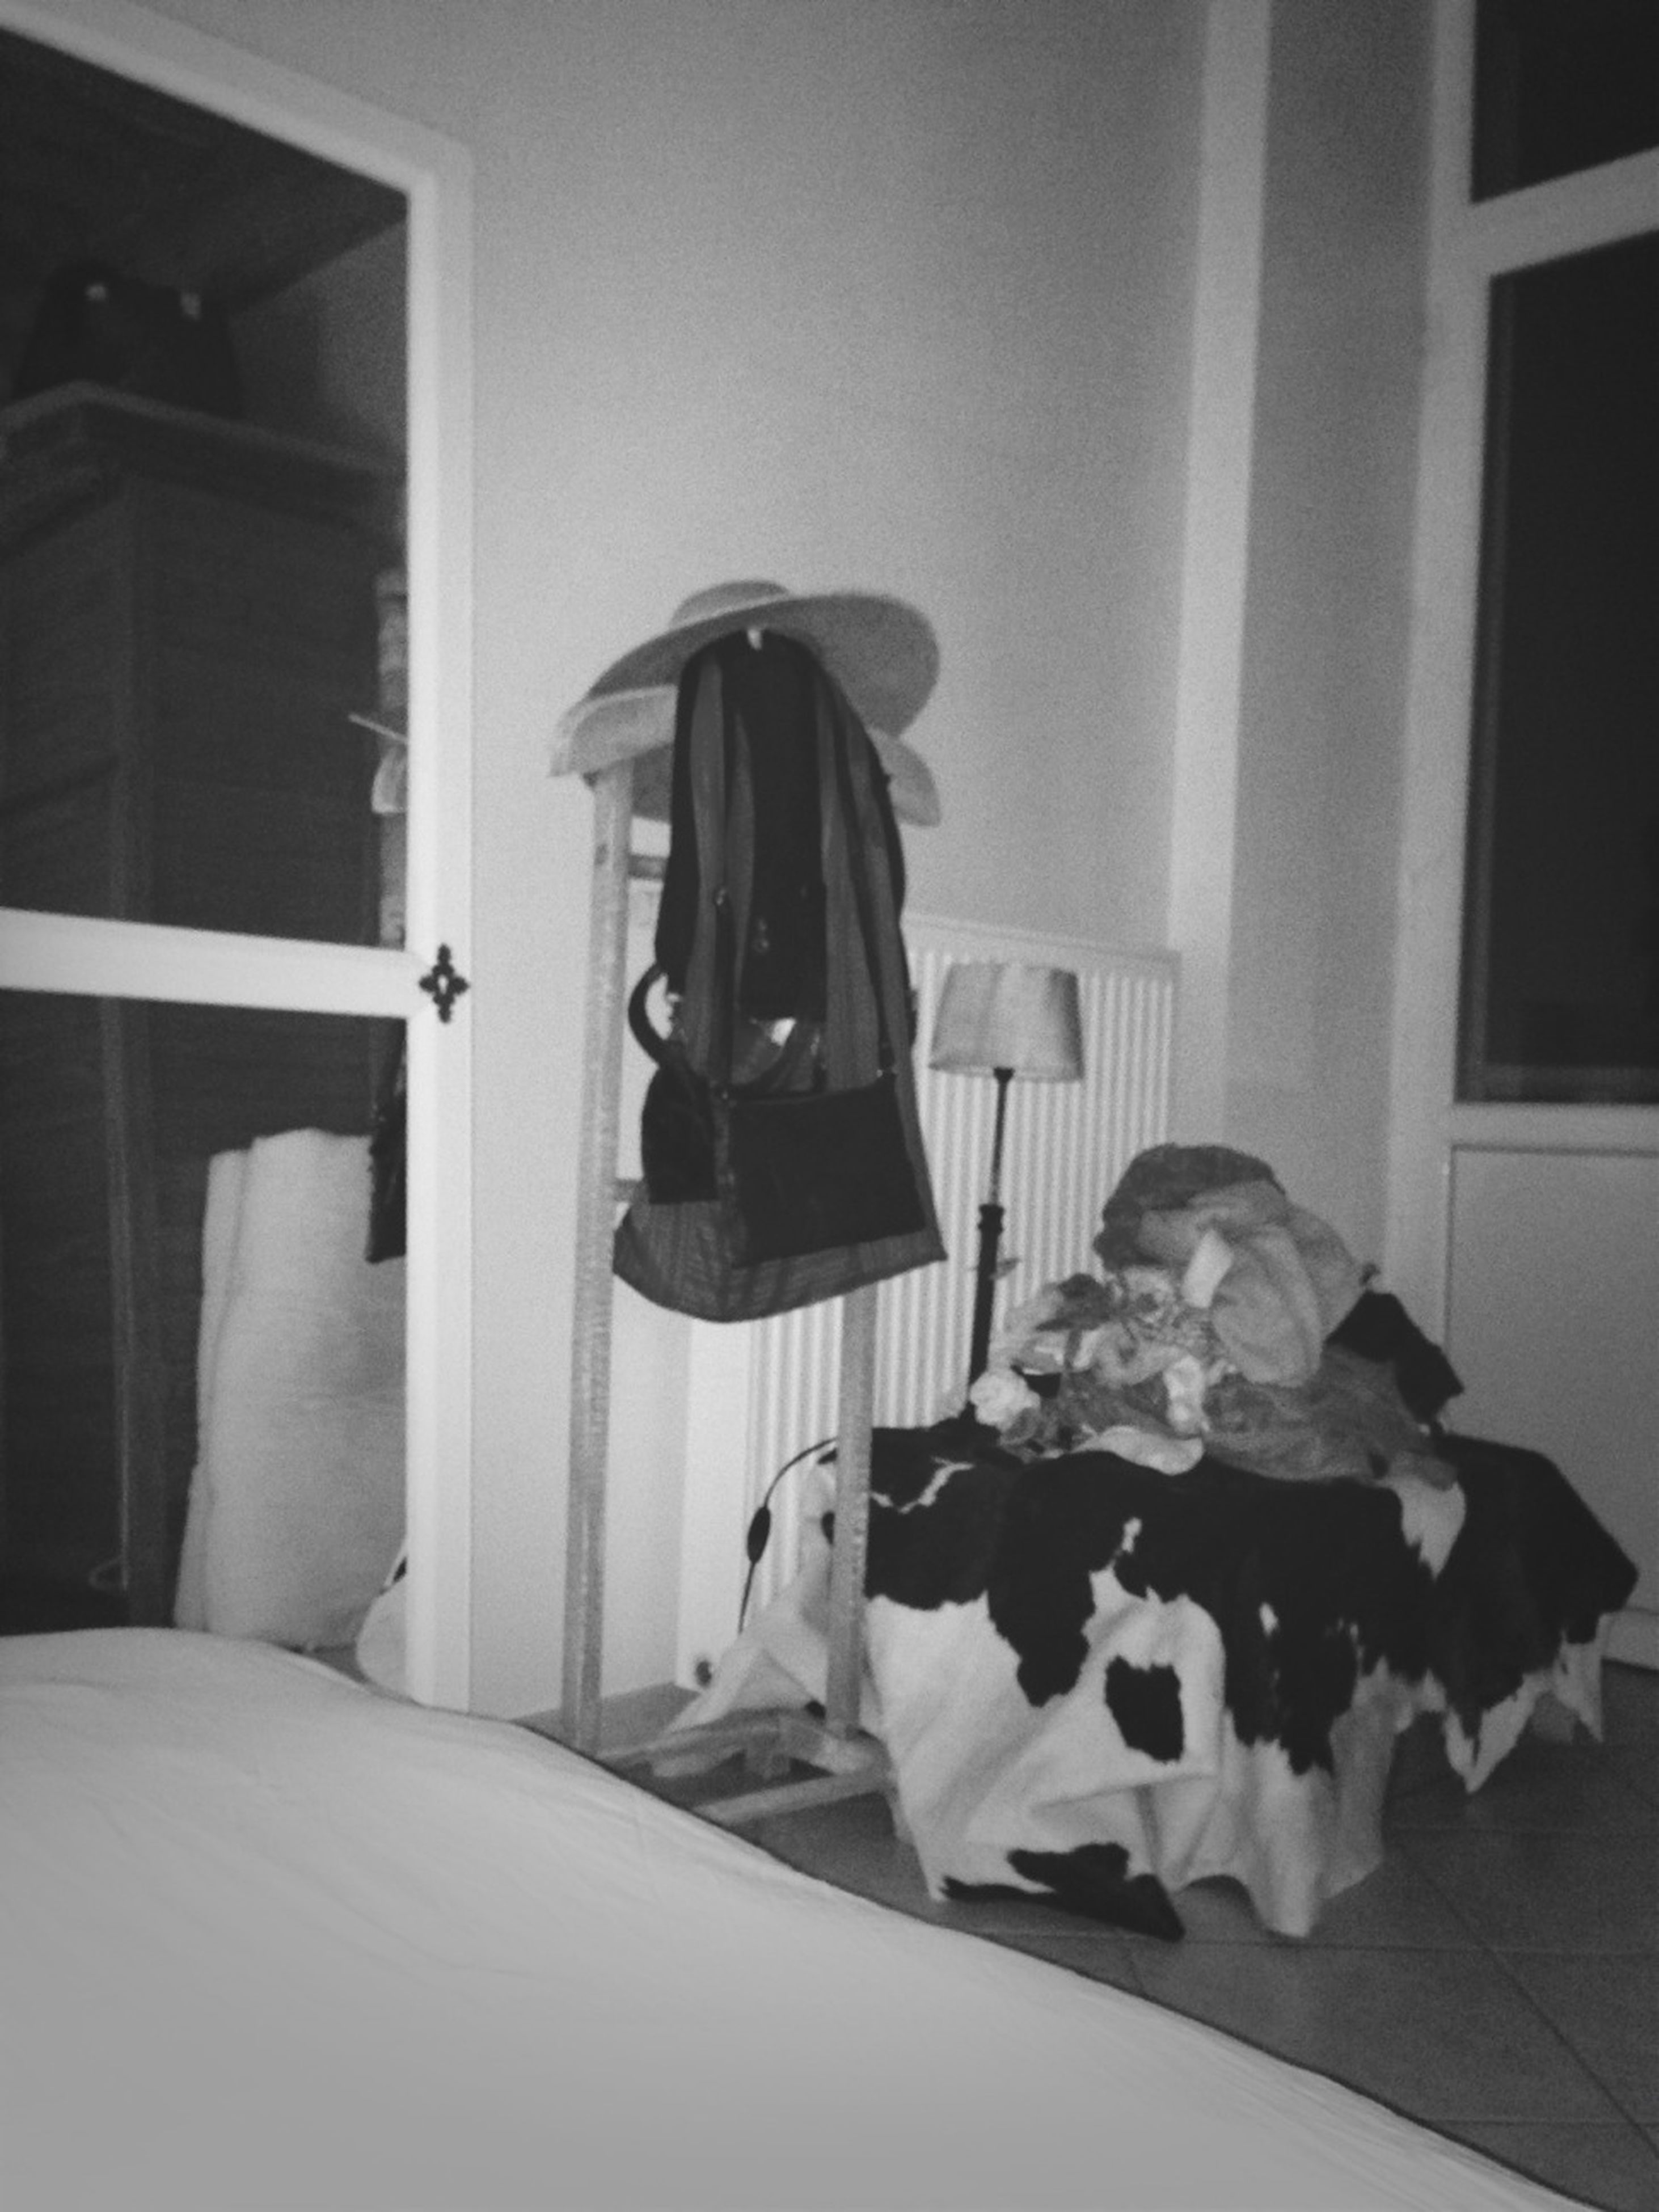 indoors, home interior, table, bed, domestic room, bedroom, chair, house, window, home, sofa, living room, sunlight, no people, still life, day, domestic life, absence, pillow, sitting